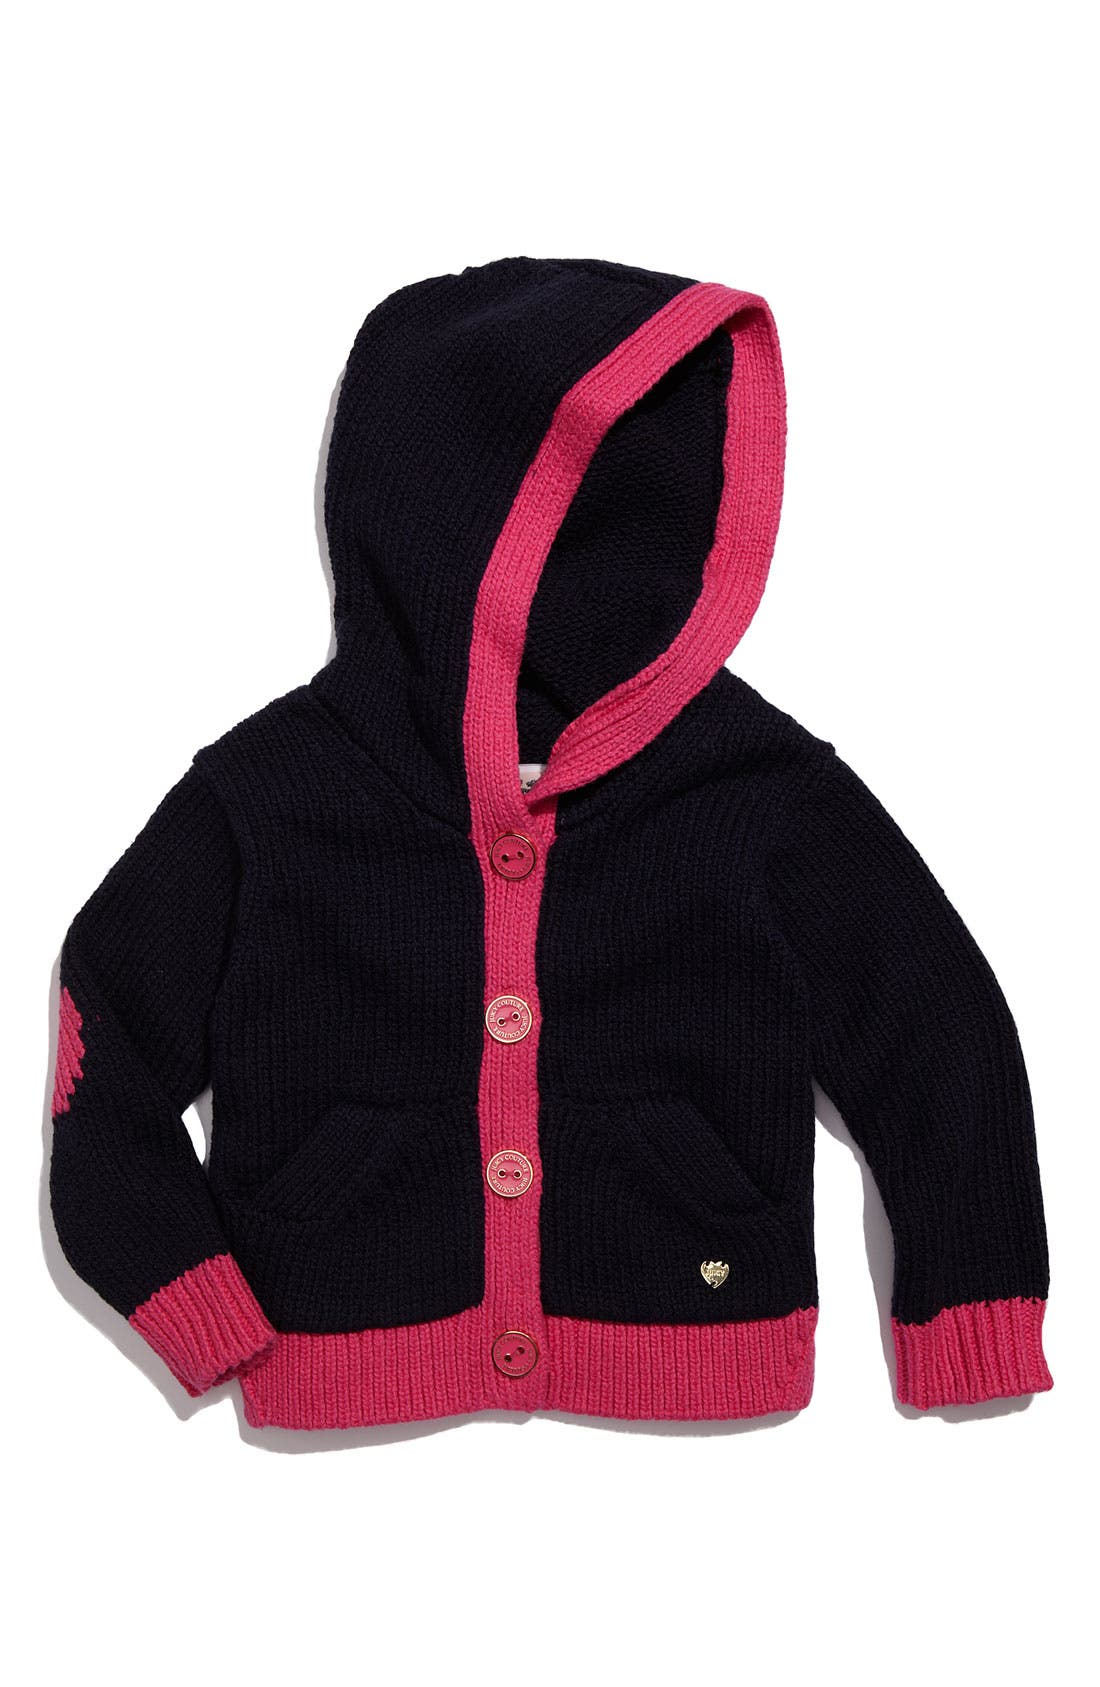 Alternate Image 1 Selected - Juicy Couture Hooded Cardigan (Toddler)